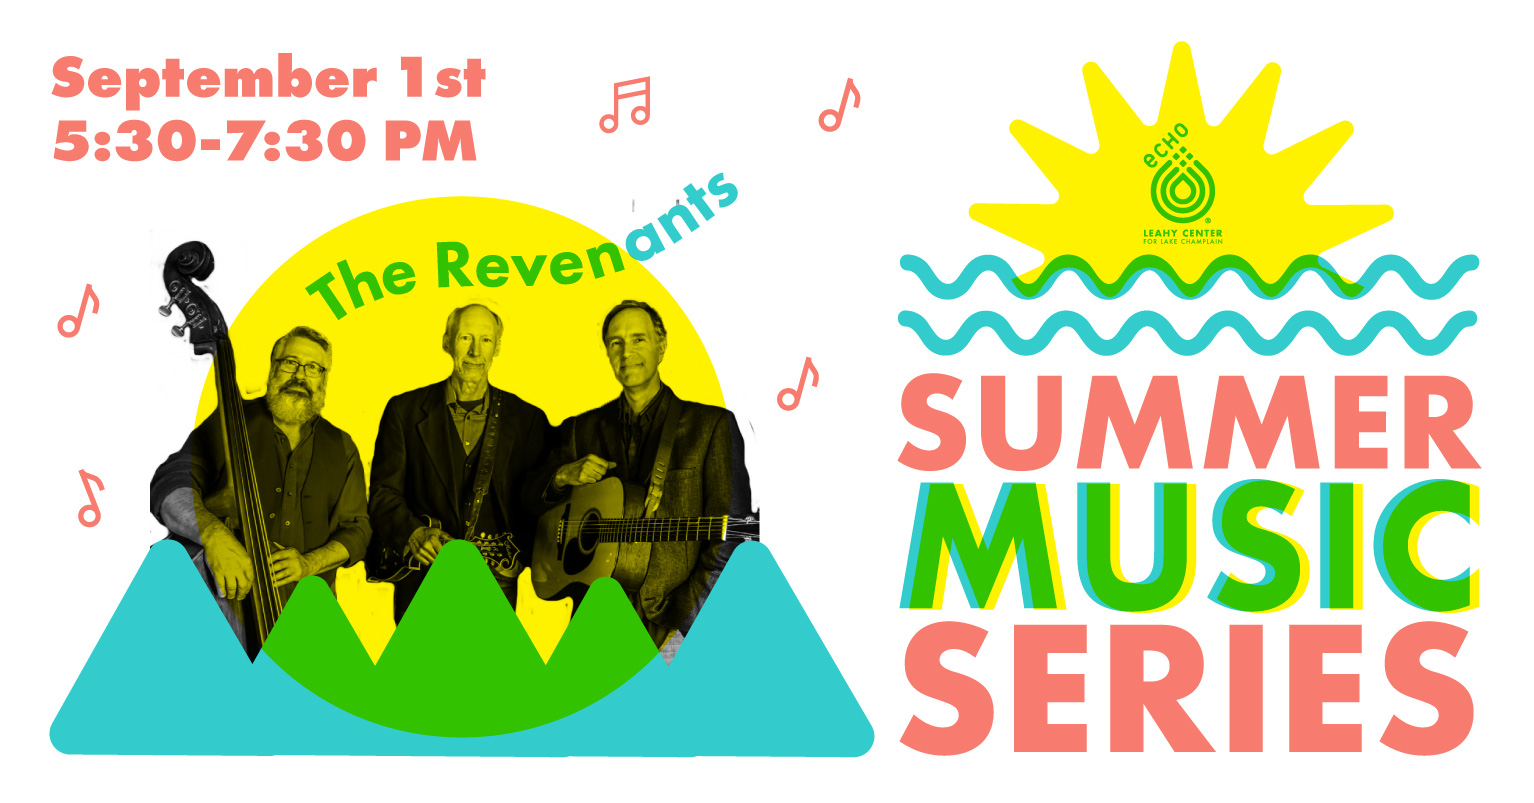 Summer Music Series at ECHO Every Other Wednesday starting June 23. Image of yellow sun, blue green mountains, musician photos in black and white.